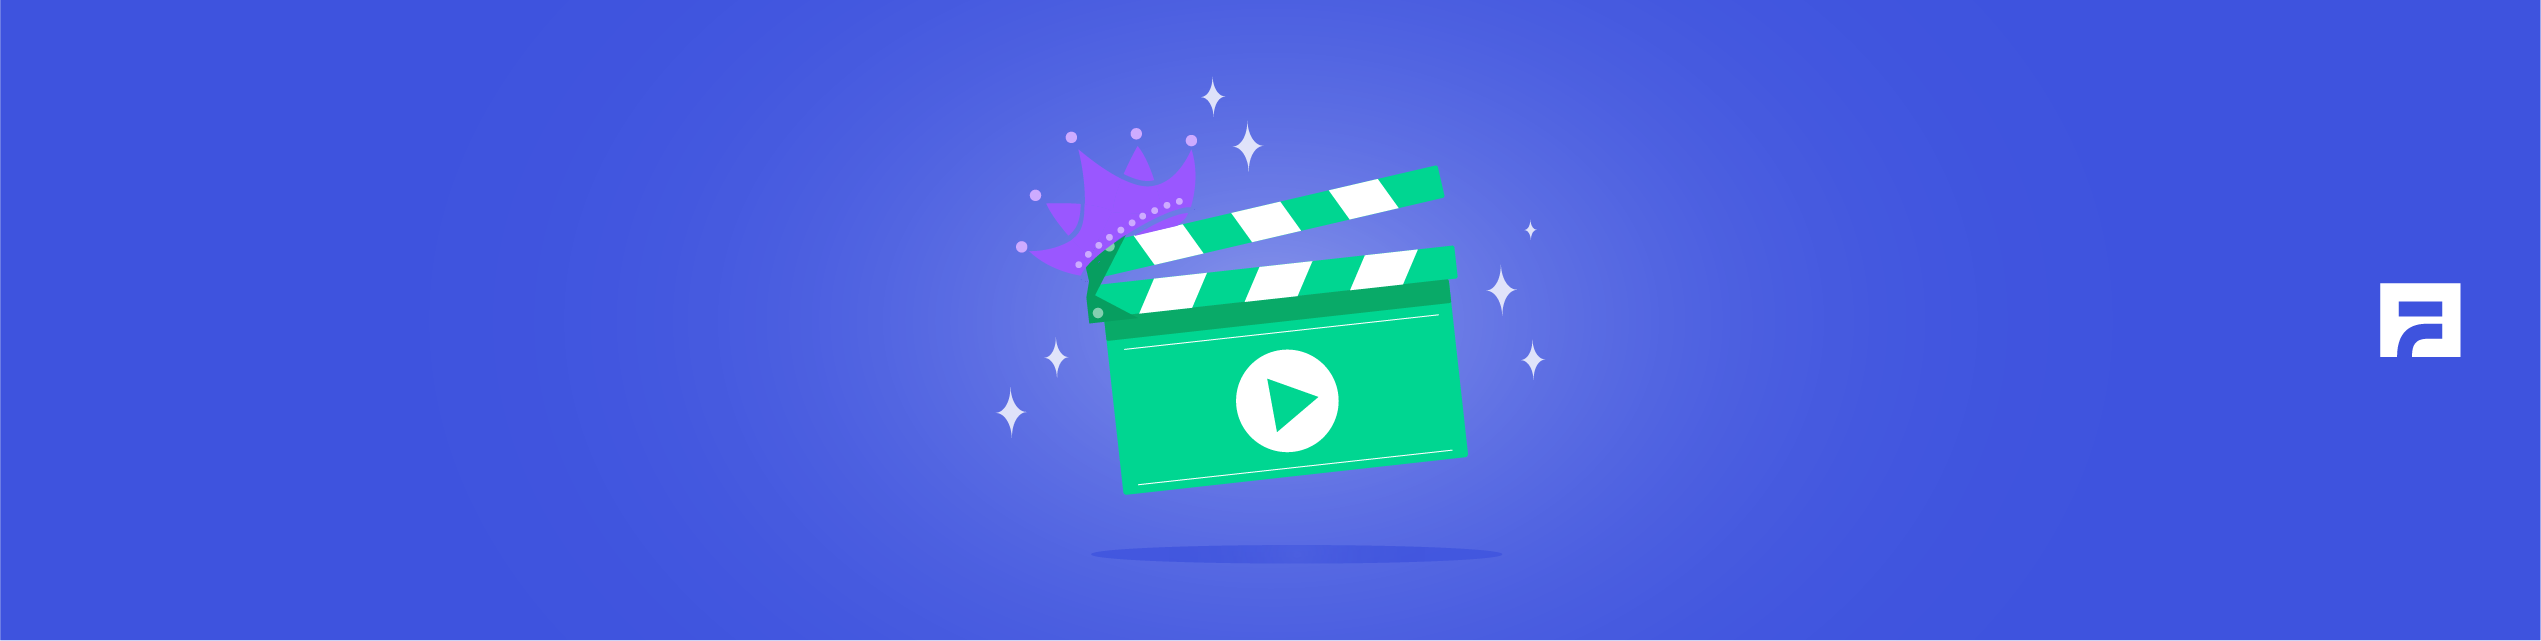 5 best practices for rewarded video from Candy Crush maker King